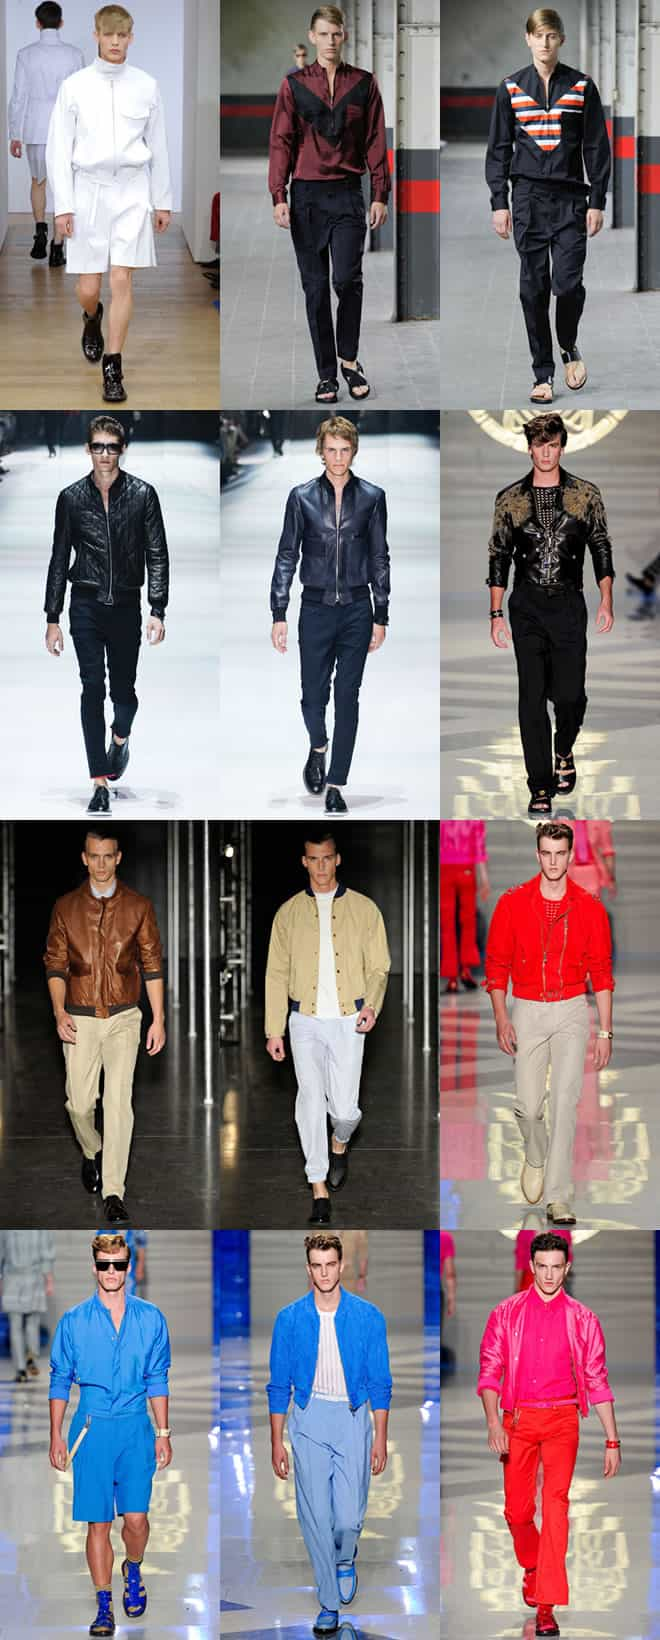 Men's Blouson Jackets on the Spring/Summer 2012 Runways